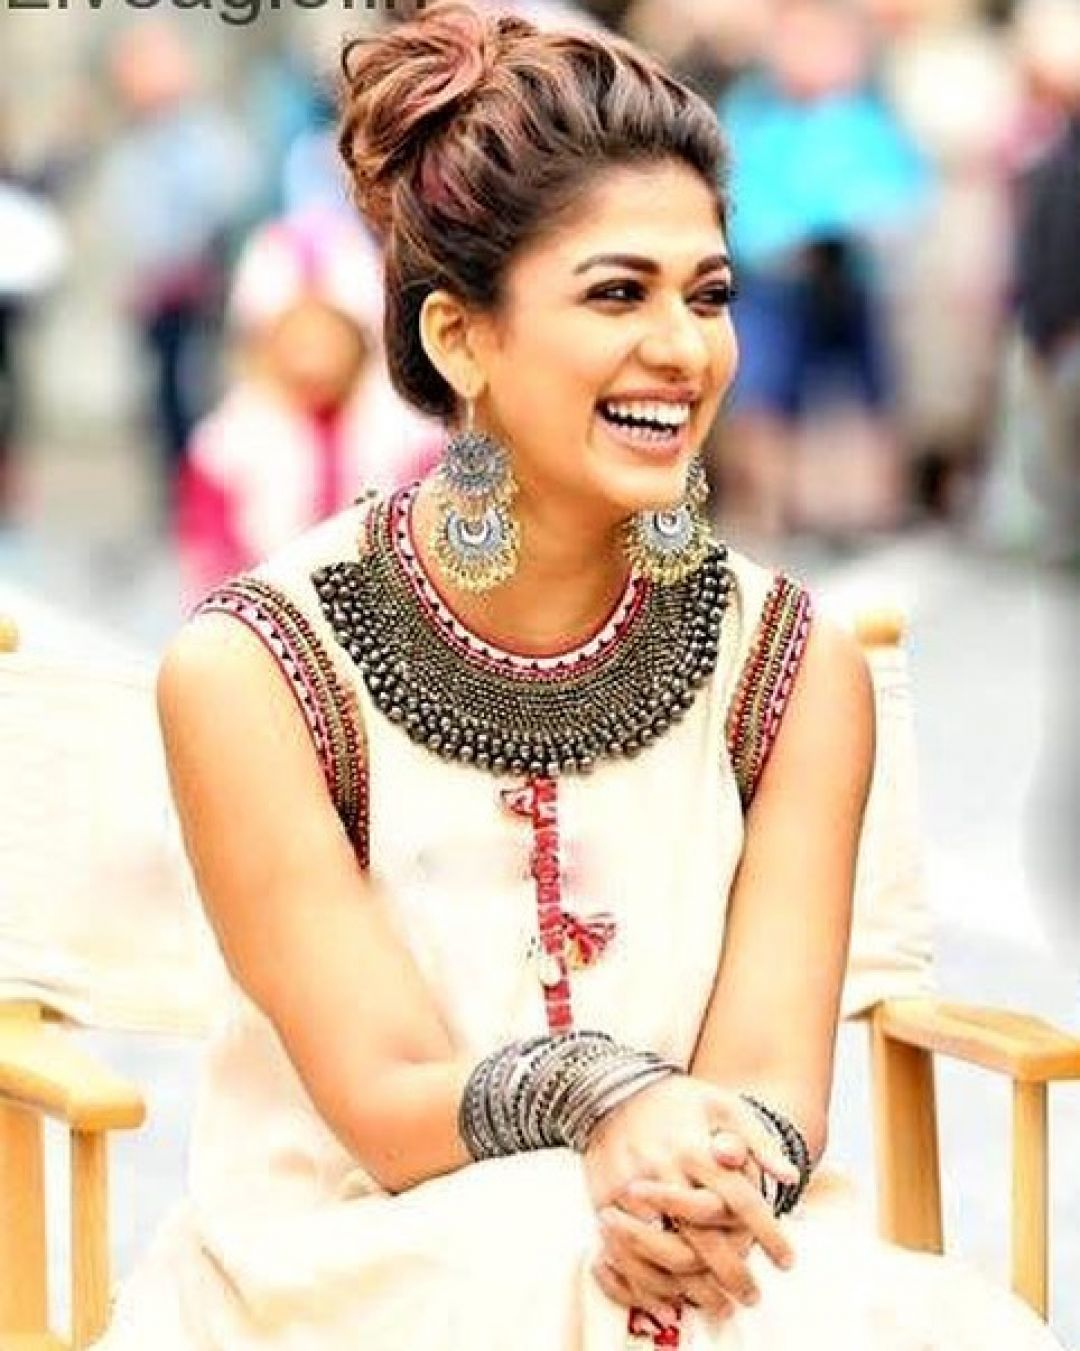 Nayanthara HD Wallpapers (Desktop Background / Android / iPhone) (1080p, 4k) (44393) - Nayanthara